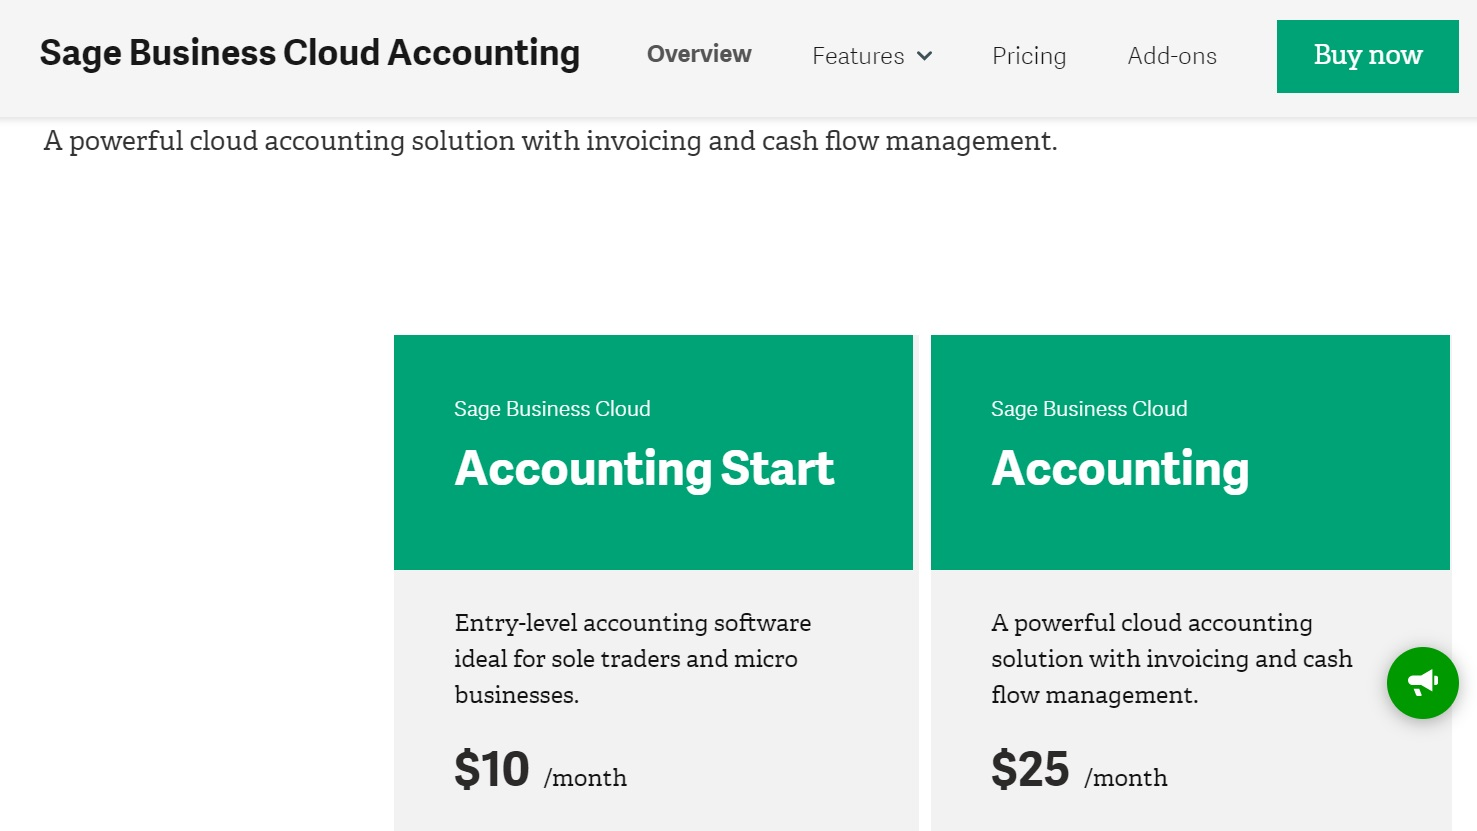 Sage Business Cloud Accounting offers both a starter plan as well as a more advanced plan that includes invoicing and cash flow management